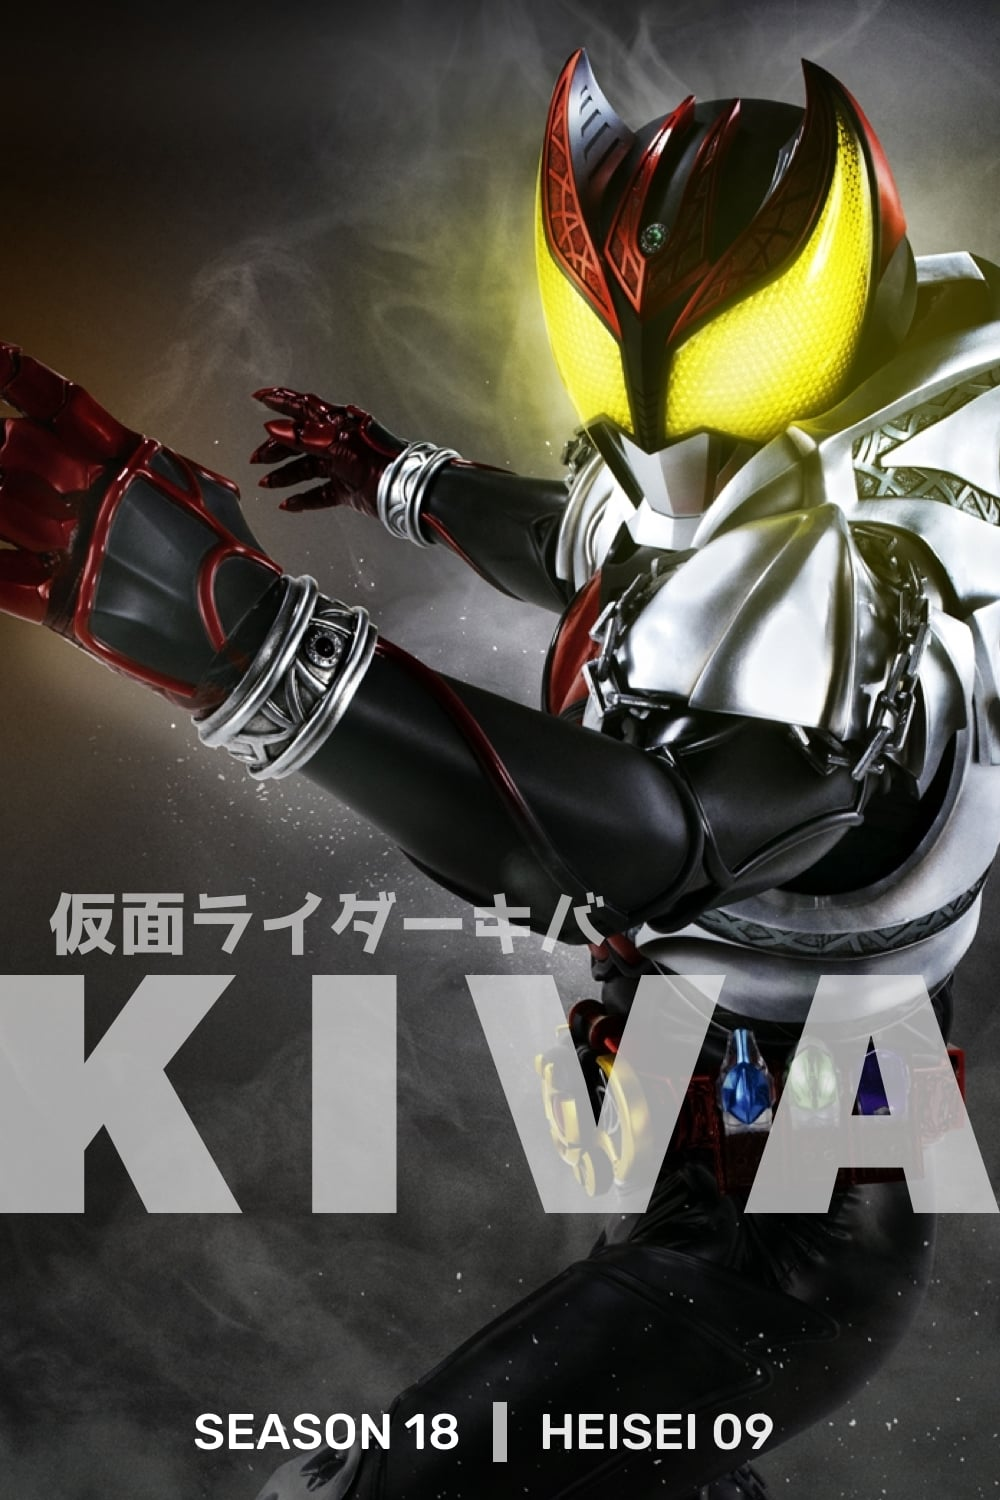 Kamen Rider - Season 21 Episode 1 : Medal, Underwear, Mysterious Arm Season 18